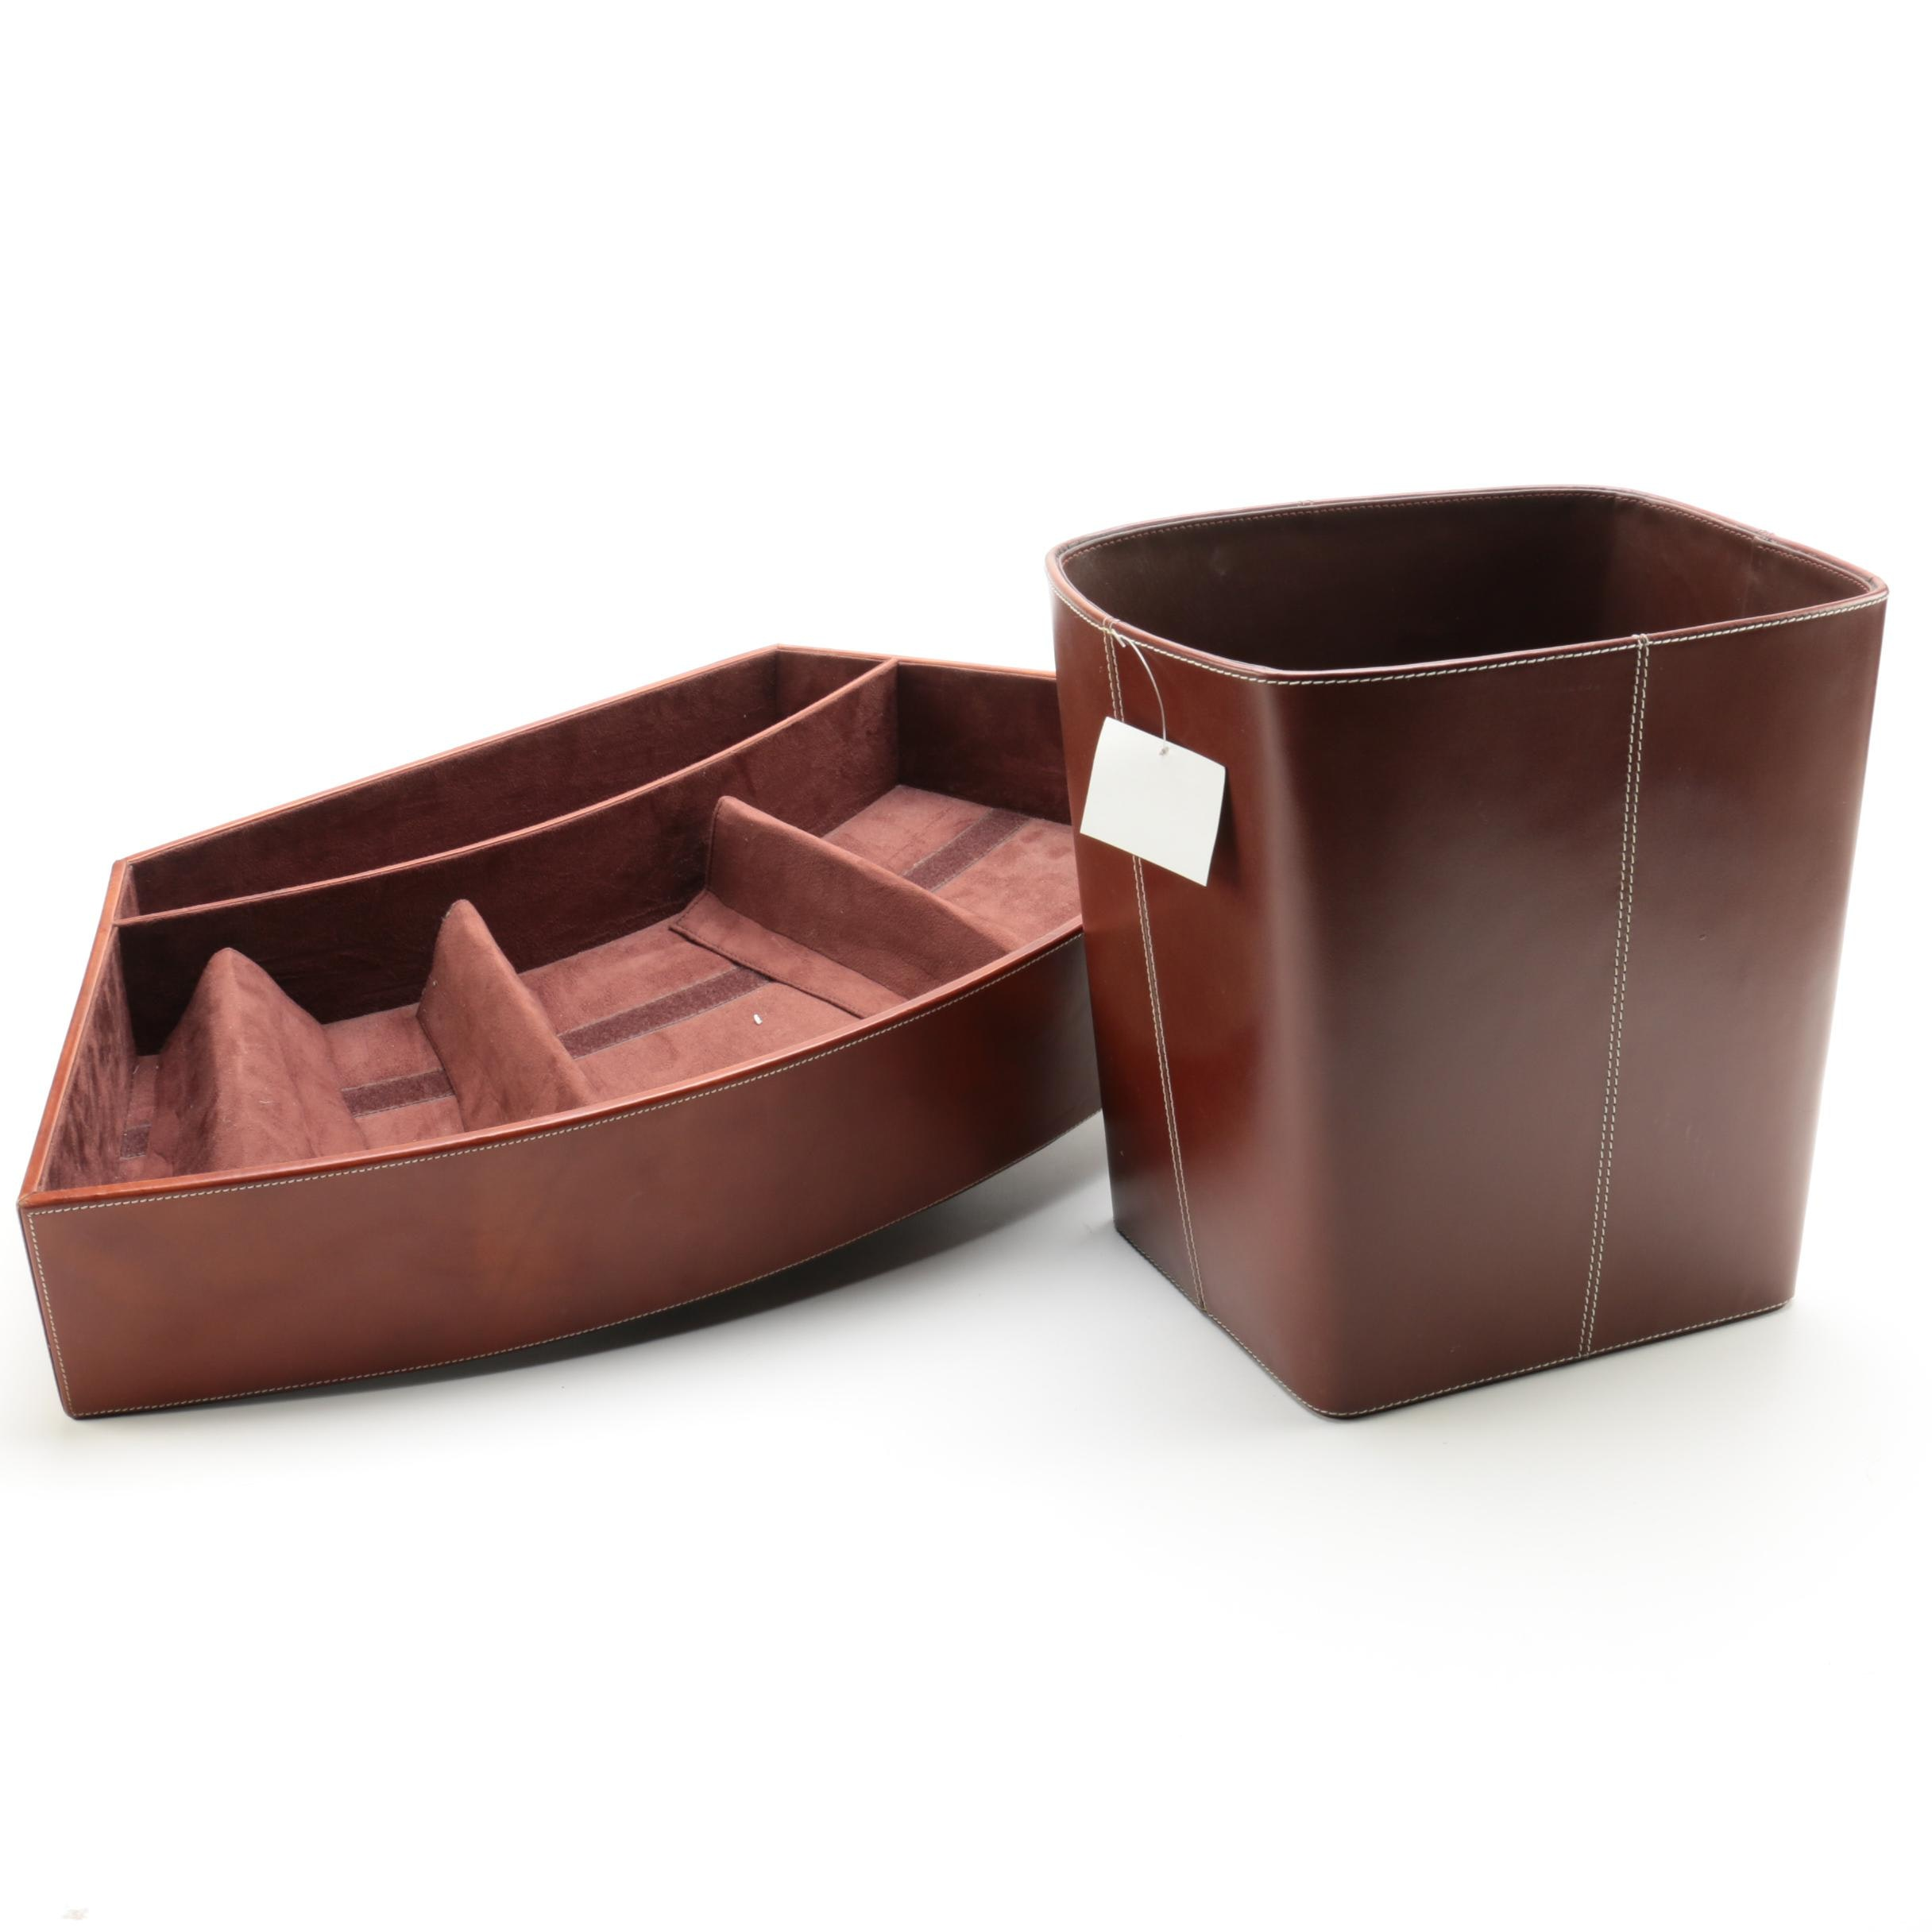 Aida Brown Leather Display Bar Set for a Hotel